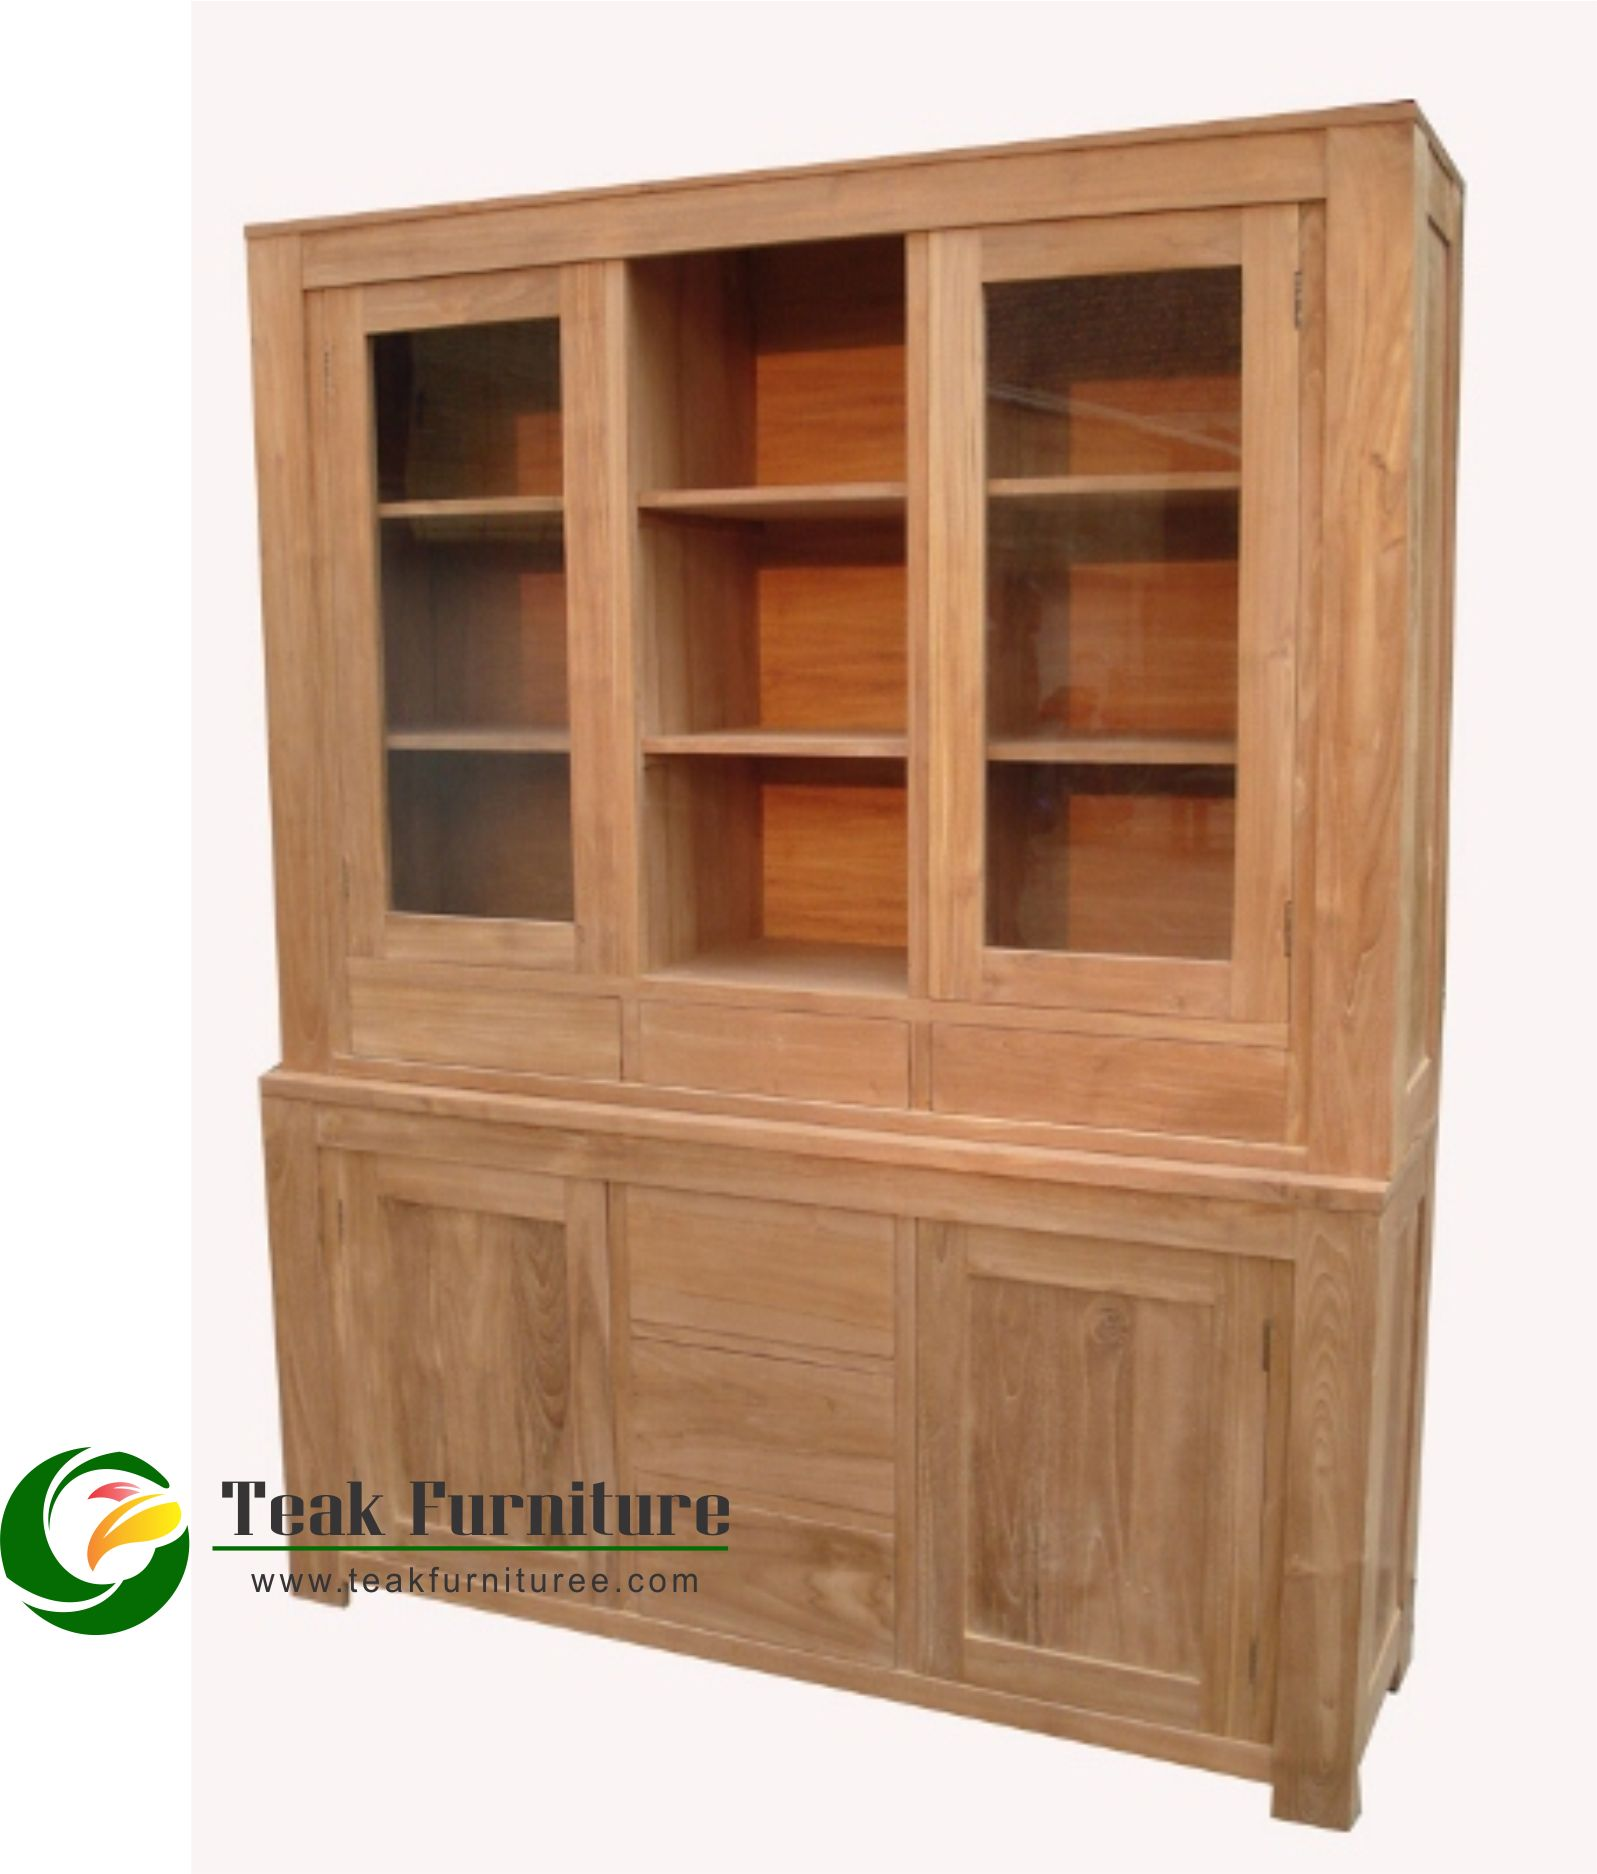 085229715553, bookcases-for-sale